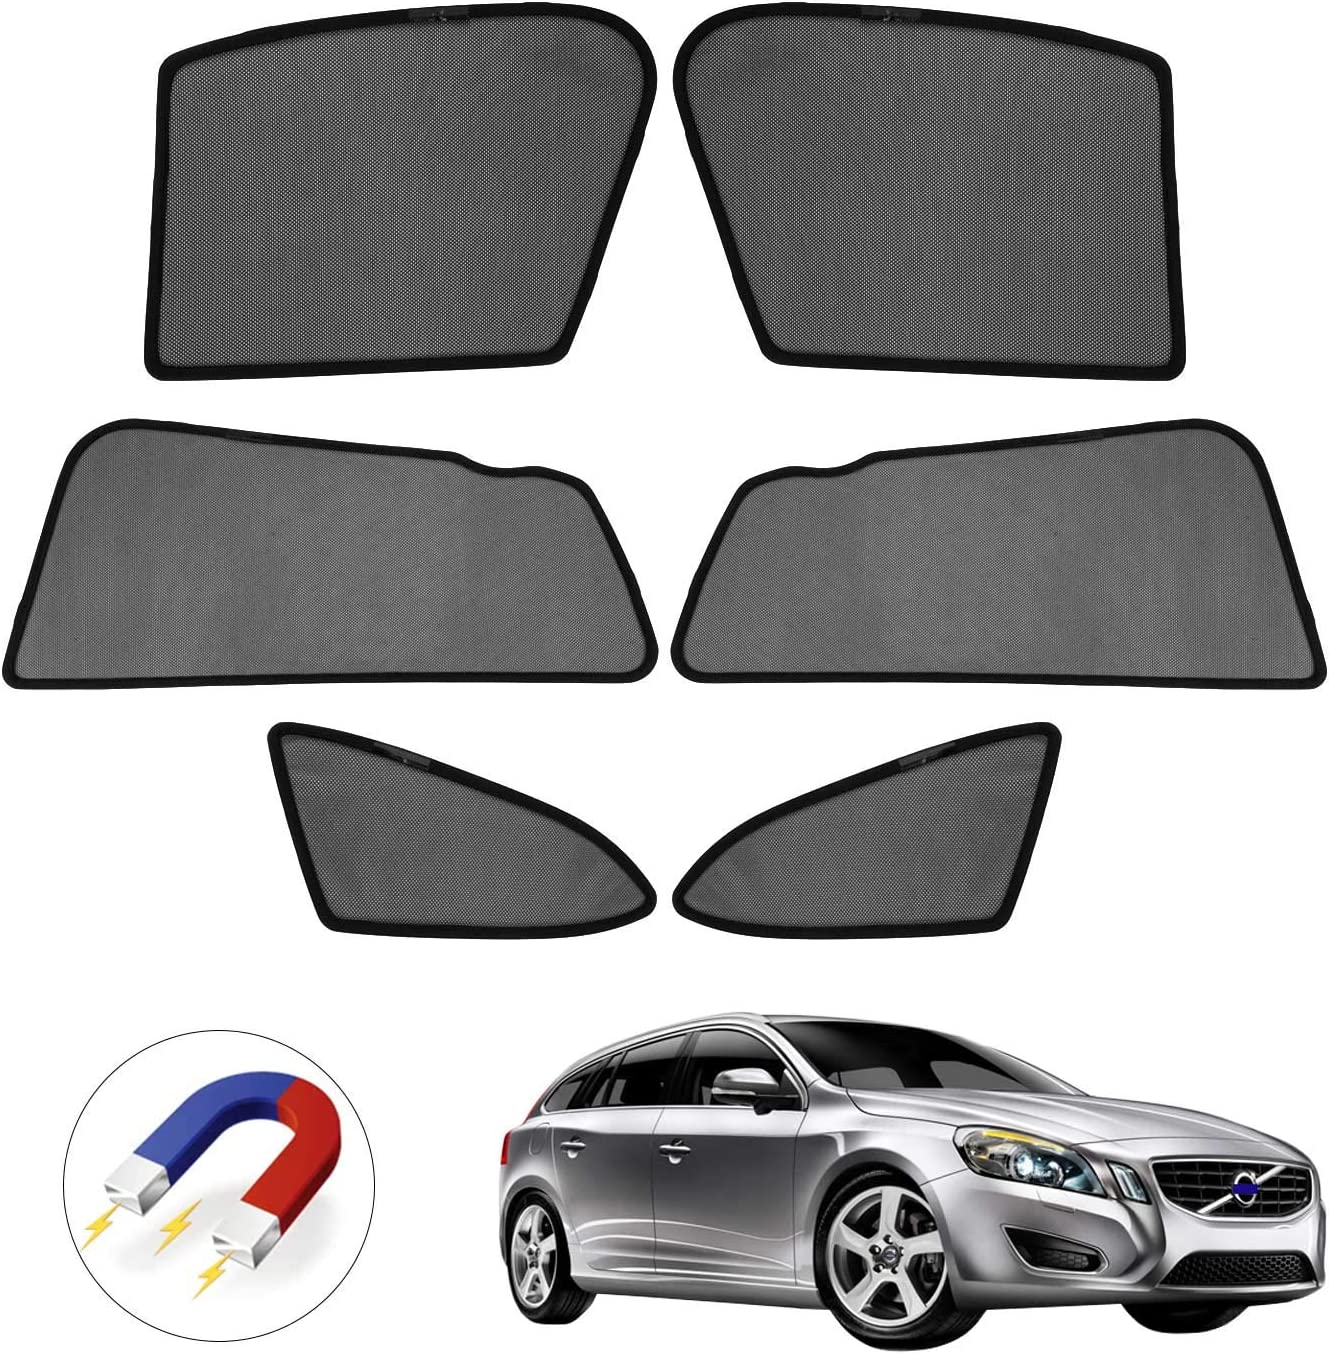 Premis Forester Sun Shade,UV Rays Protection Magnet Window Shade for 2019 Subaru Forester 6 Pack